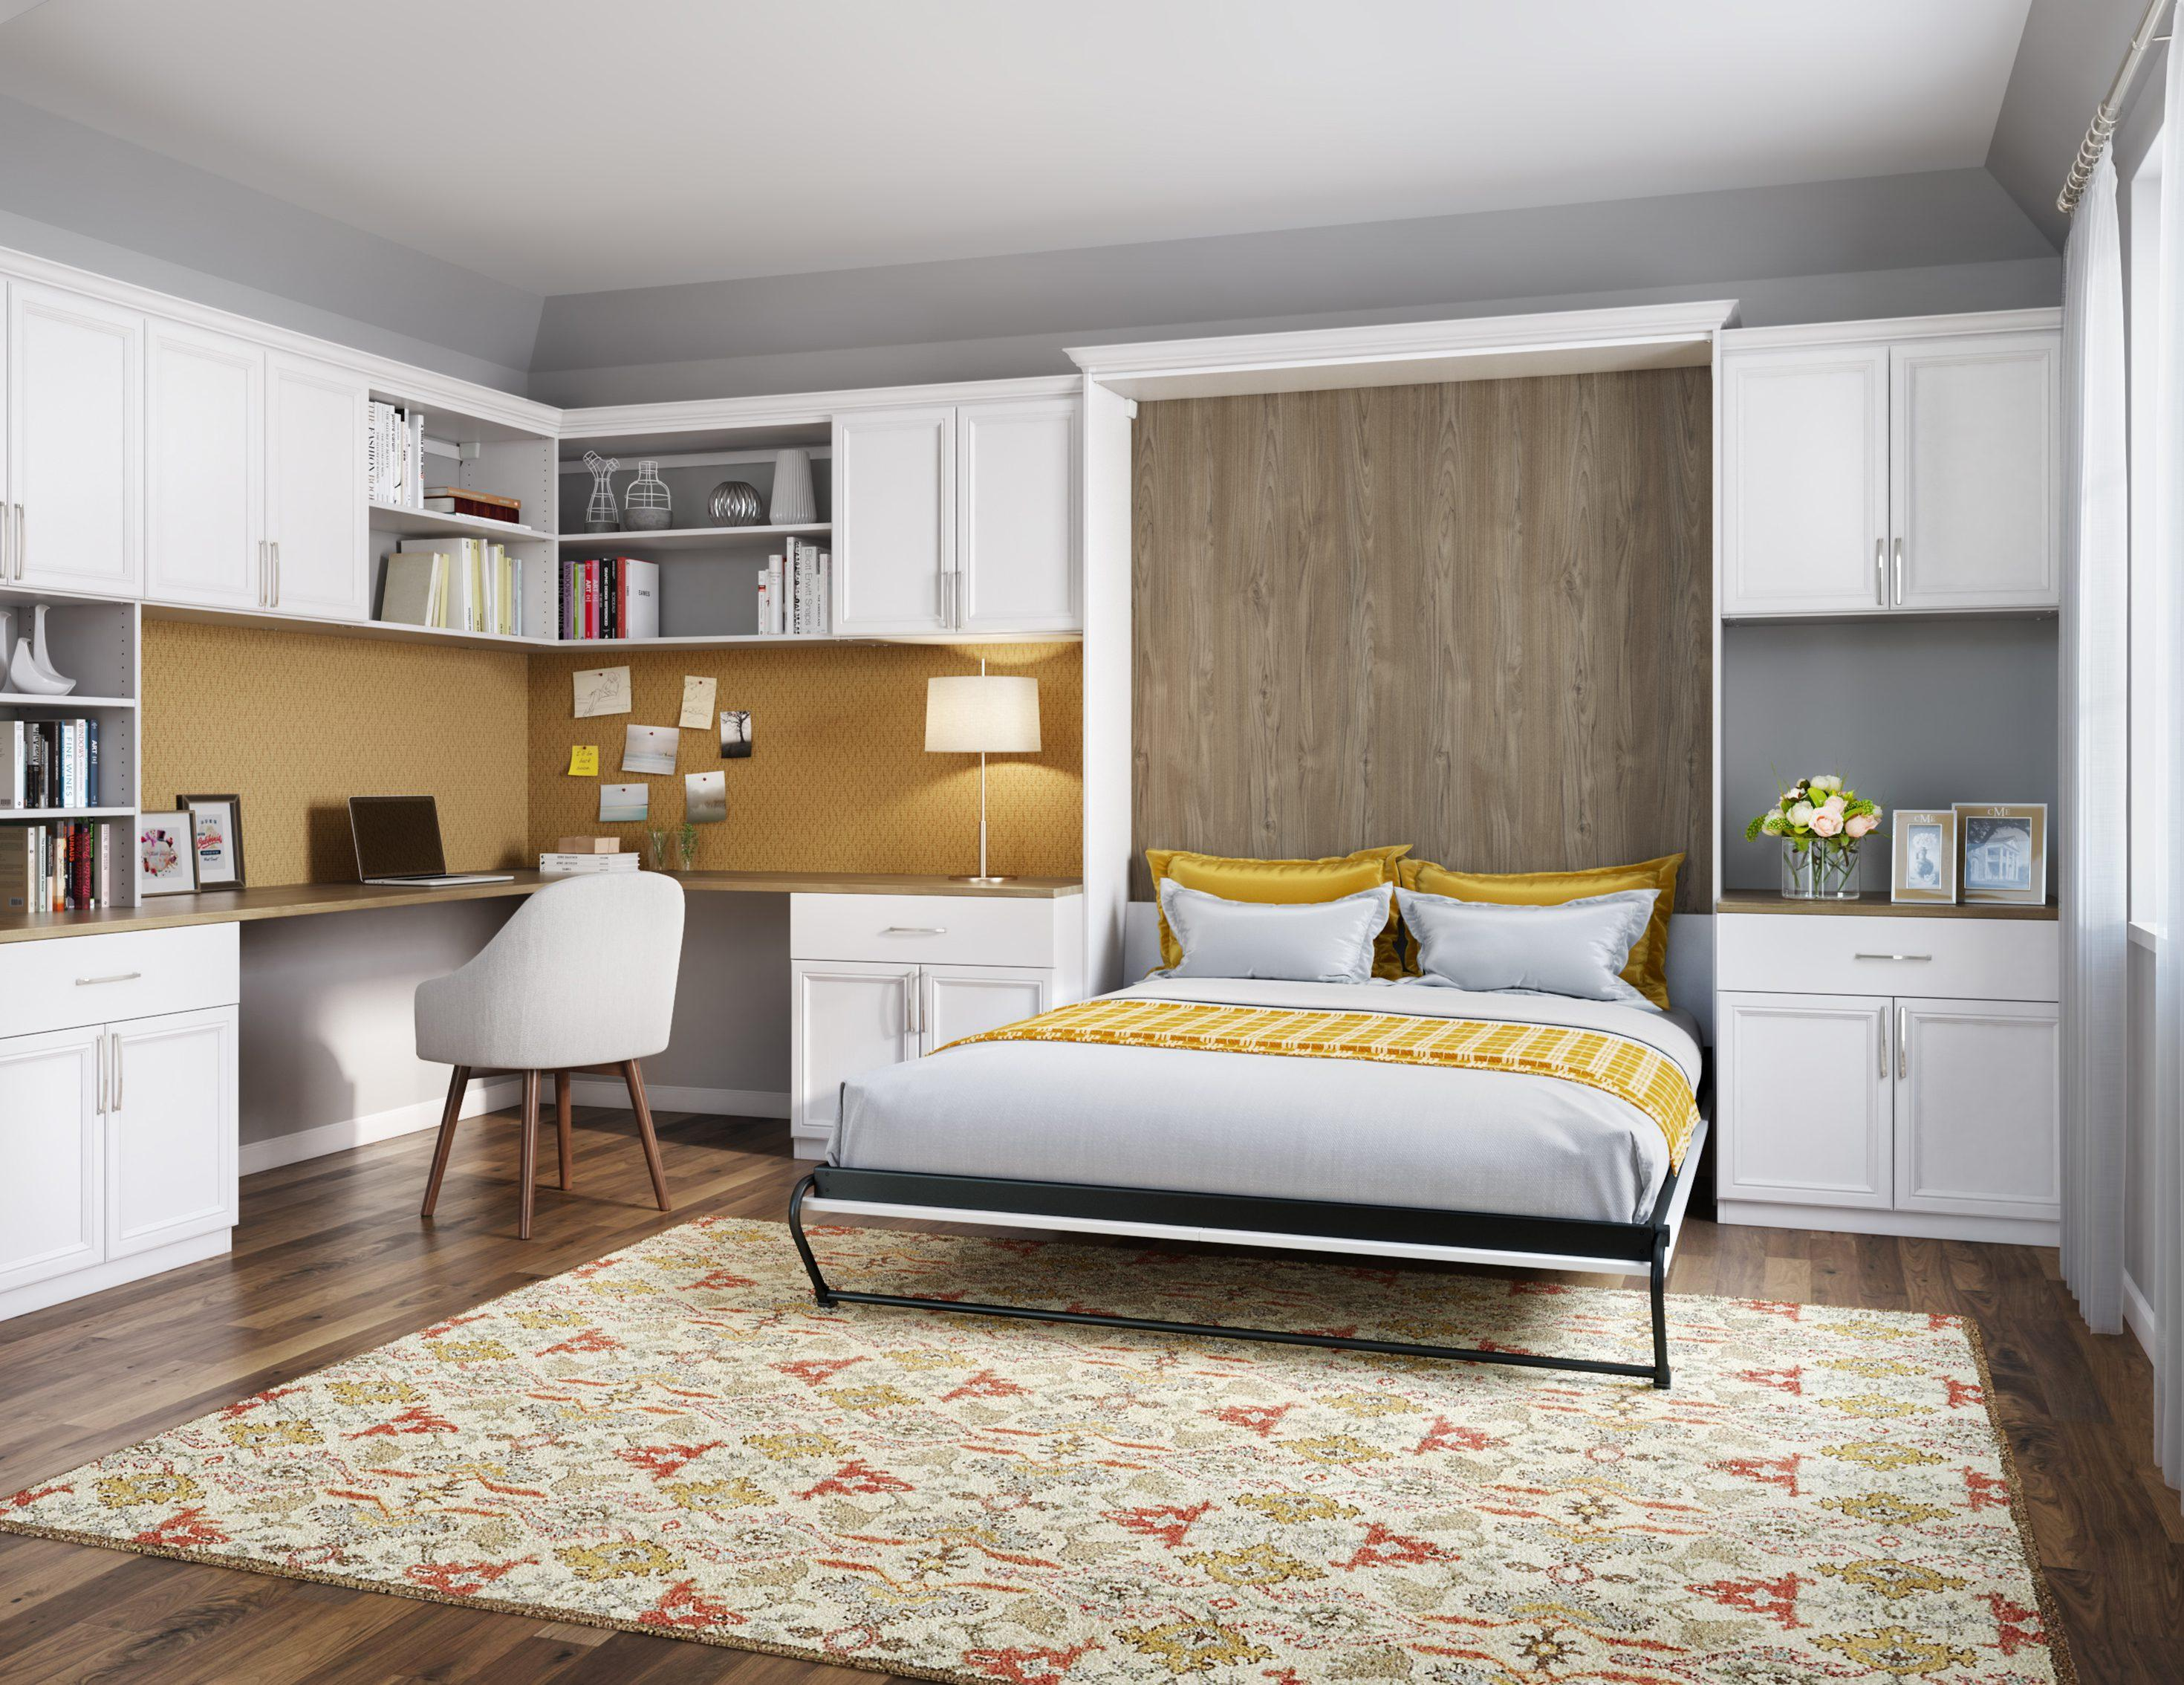 Wall beds california closets campbell convertible office amipublicfo Choice Image